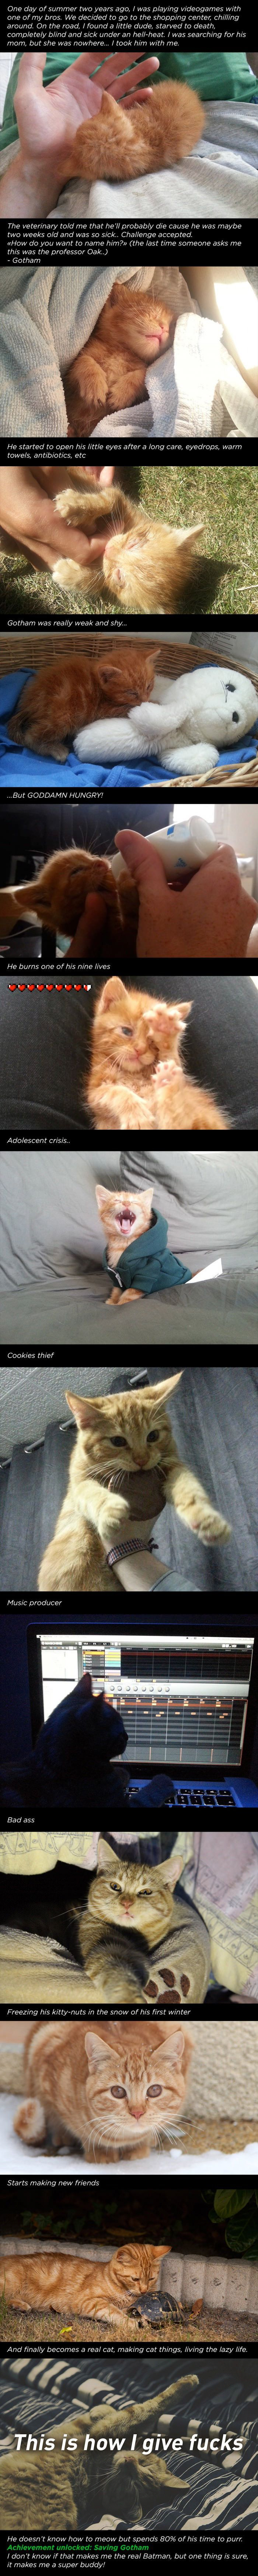 Story of a Cat named Gotham - Imgur